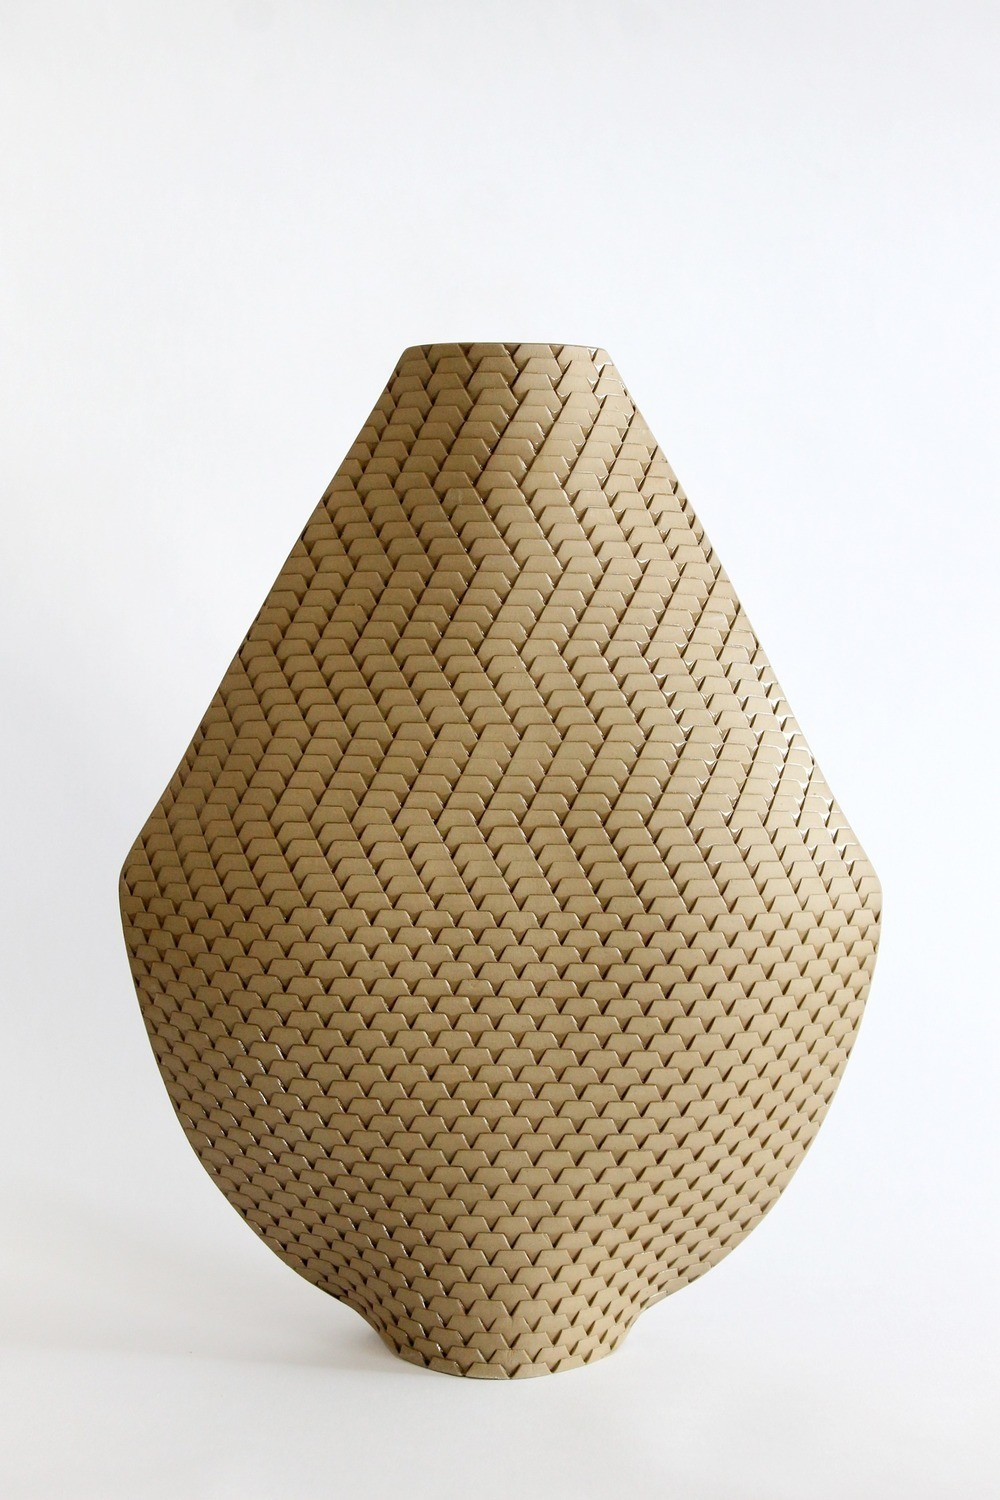 Akan K25 Vase by Helene Morbu (India)